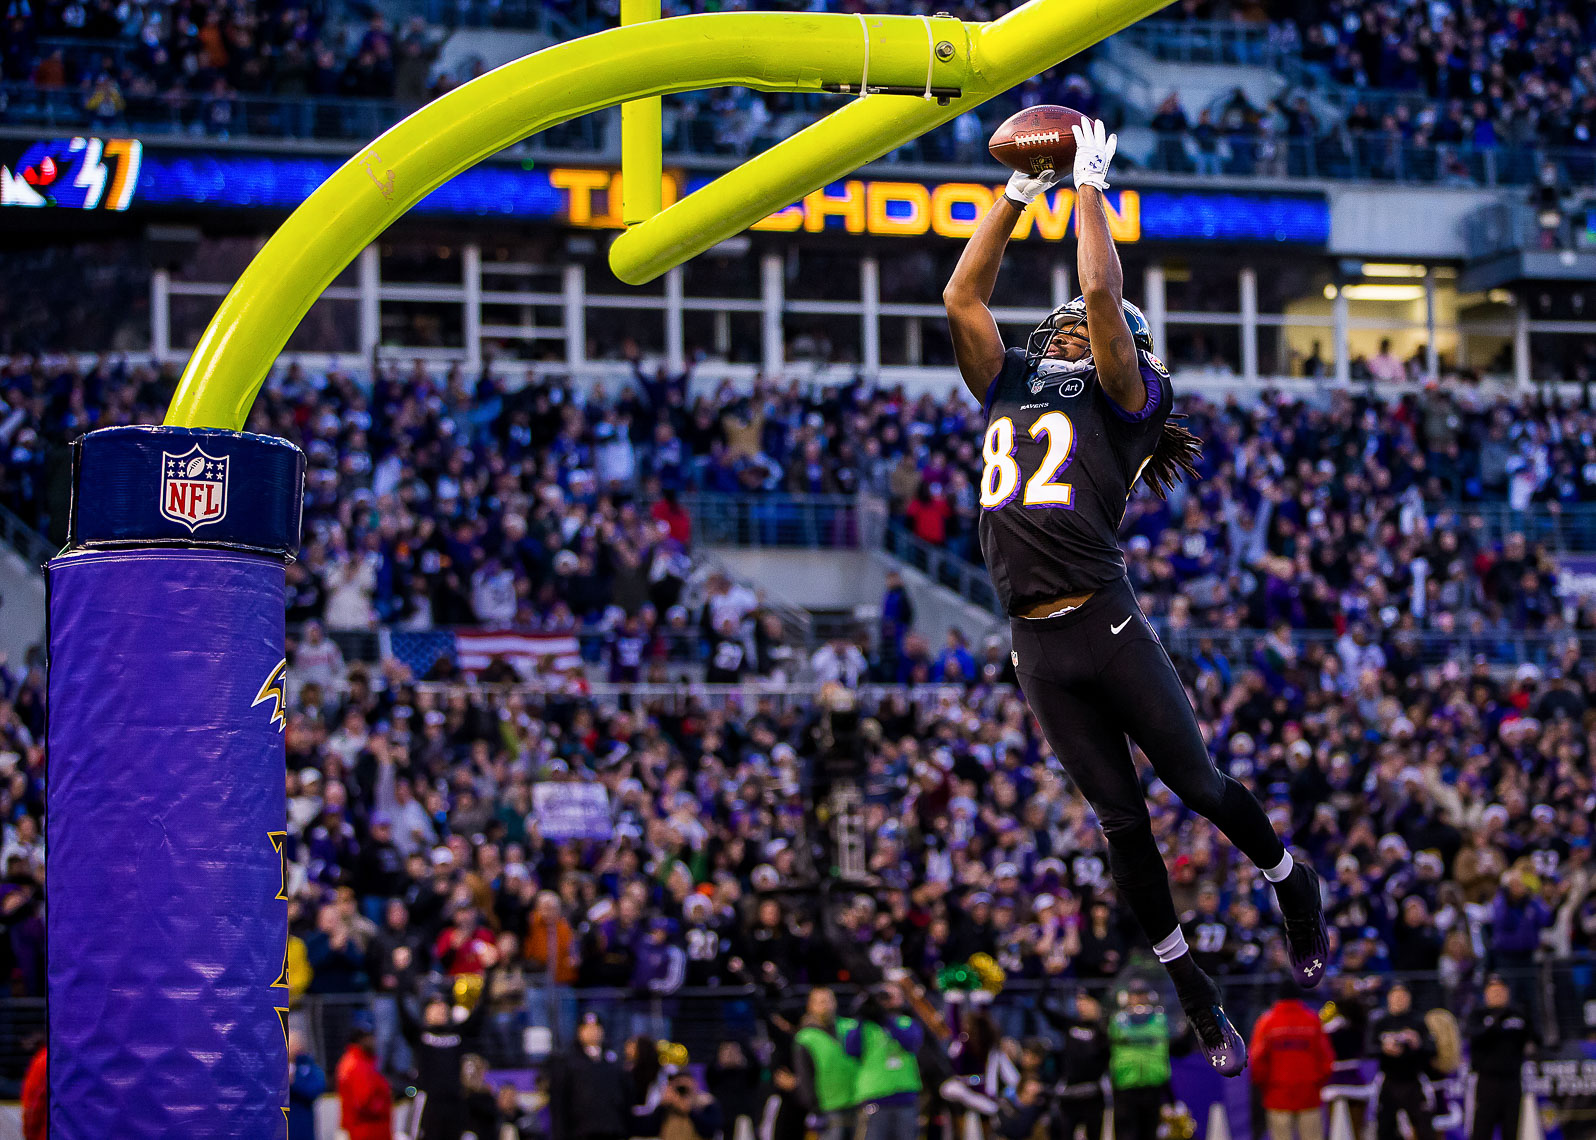 ravens34  NFL Baltimore Ravens photos NFL behind the scenes documentary sports photographer photo of Torrey Smith NFL touchdown celebration